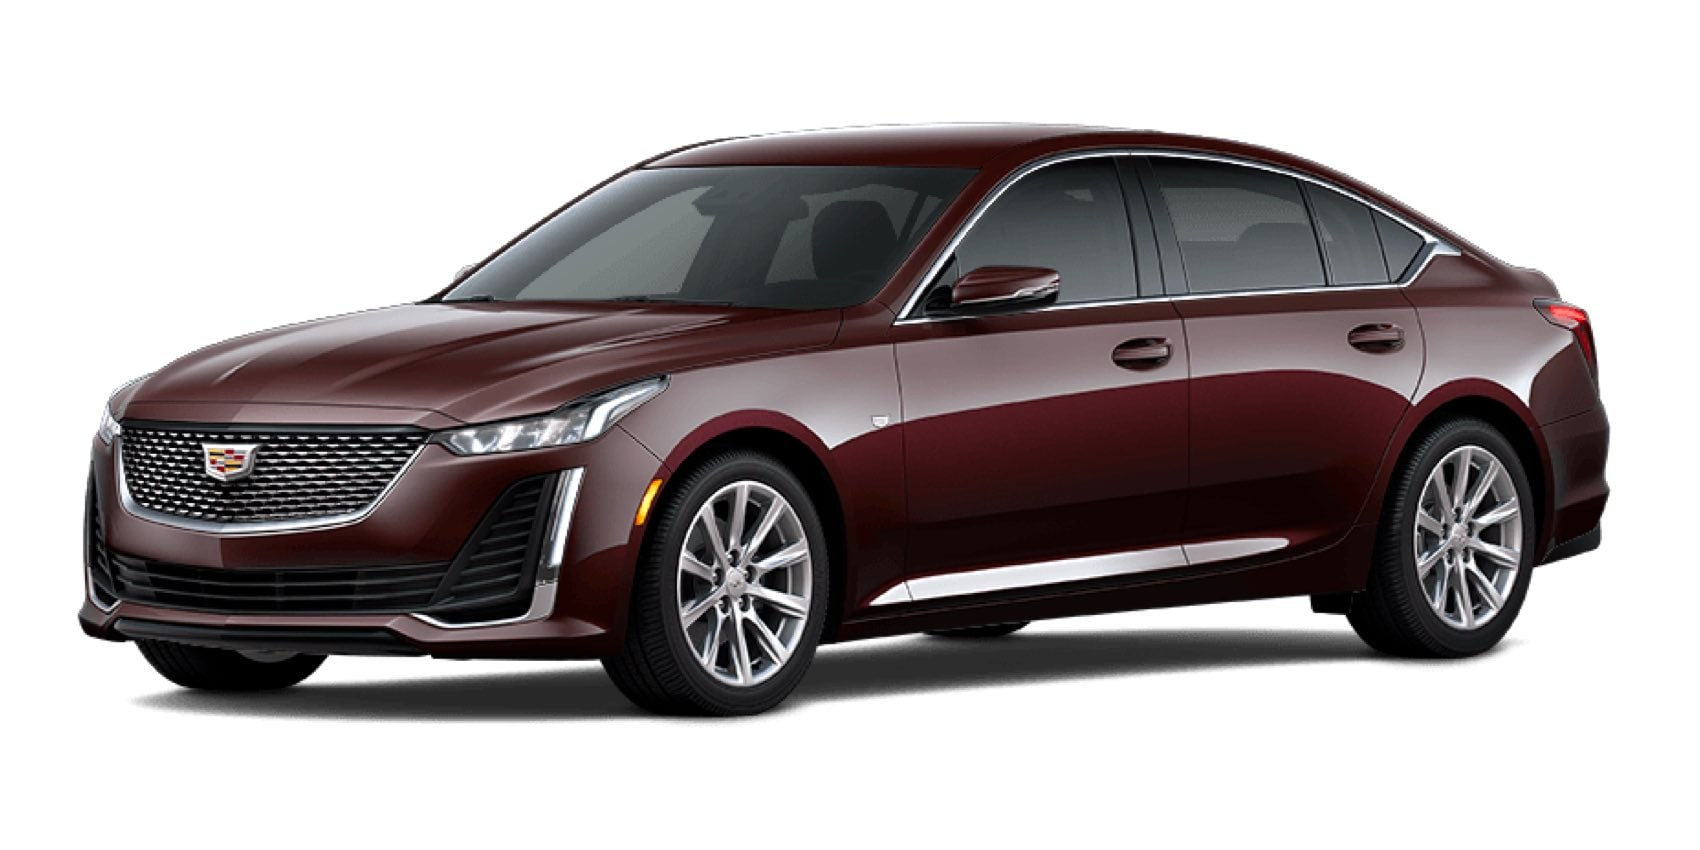 2021 Cadillac CT5 in Garnet Metallic